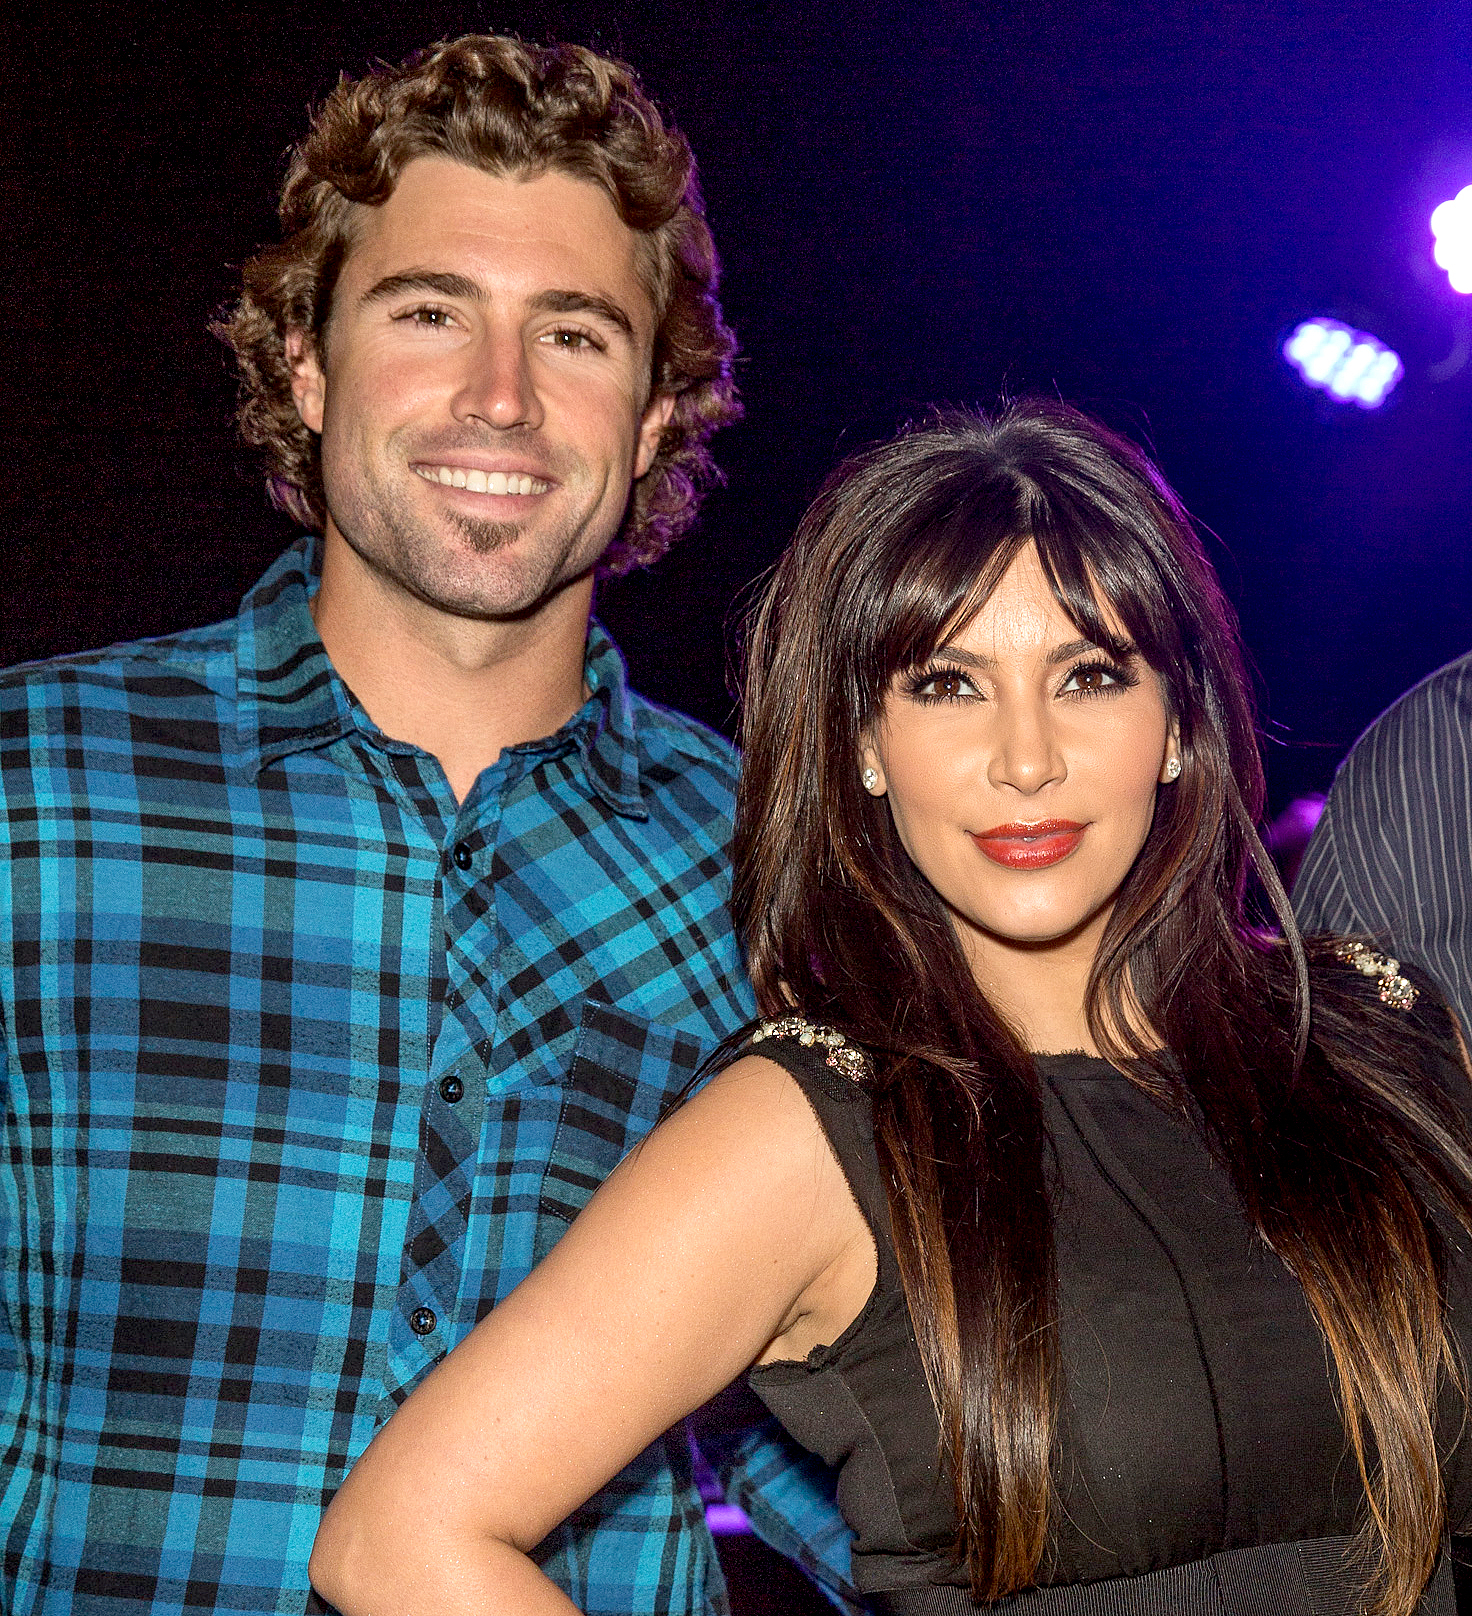 Brody Jenner and Kim Kardashian attend the Brandon and Leah album release party for